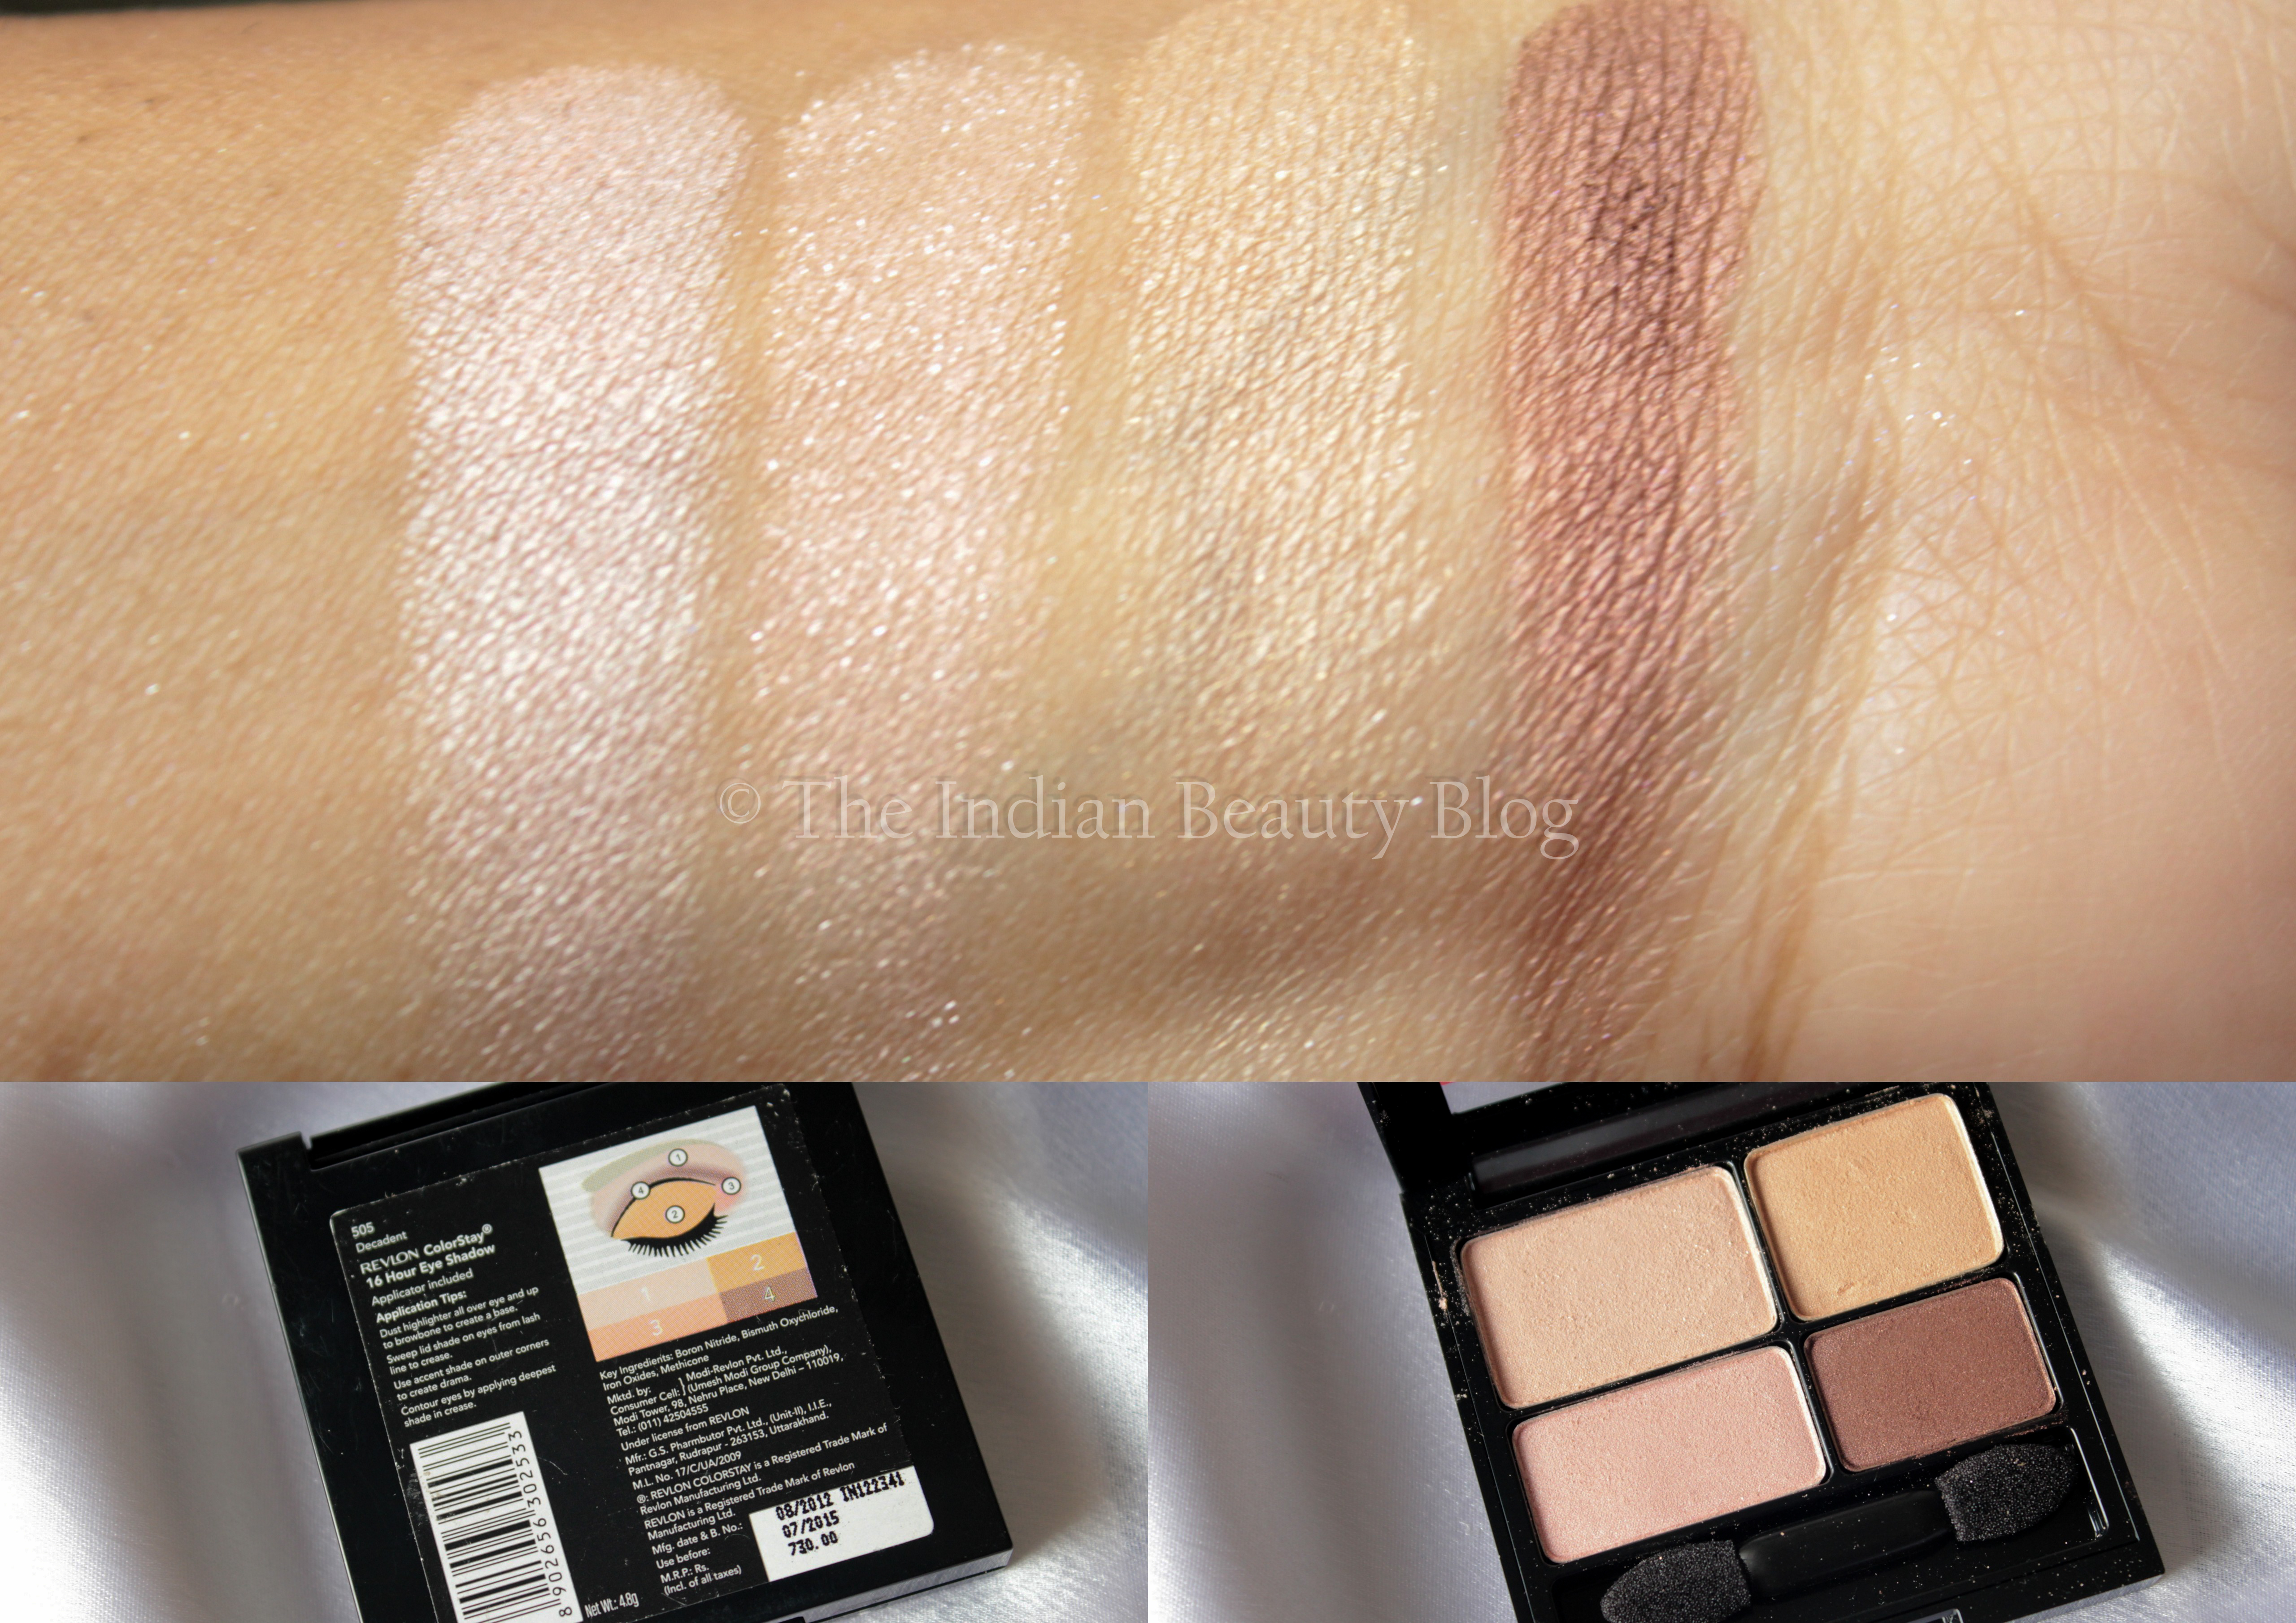 Revlon colorstay 16 hour eyeshadow decadent review best revlon colorstay eyeshadow decadent review best 2017 ccuart Images